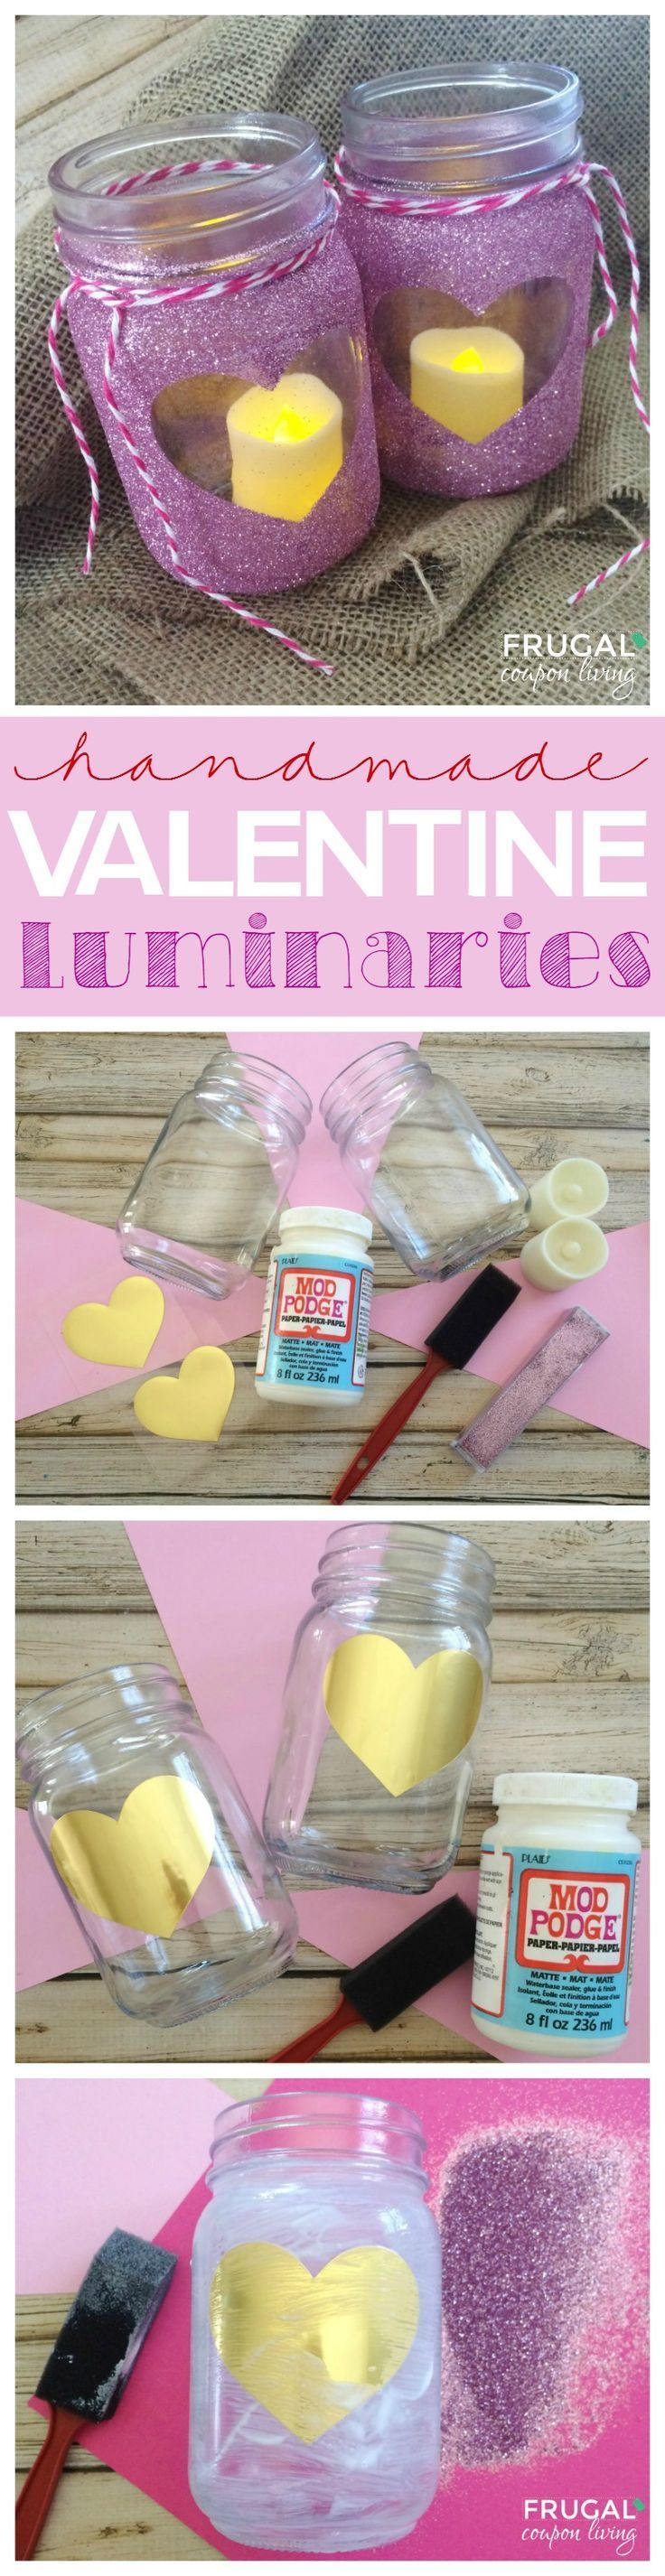 Homemade Valentine Luminaries Mason Jar Craft - Easy and fun mason jar craft for those of all ages.